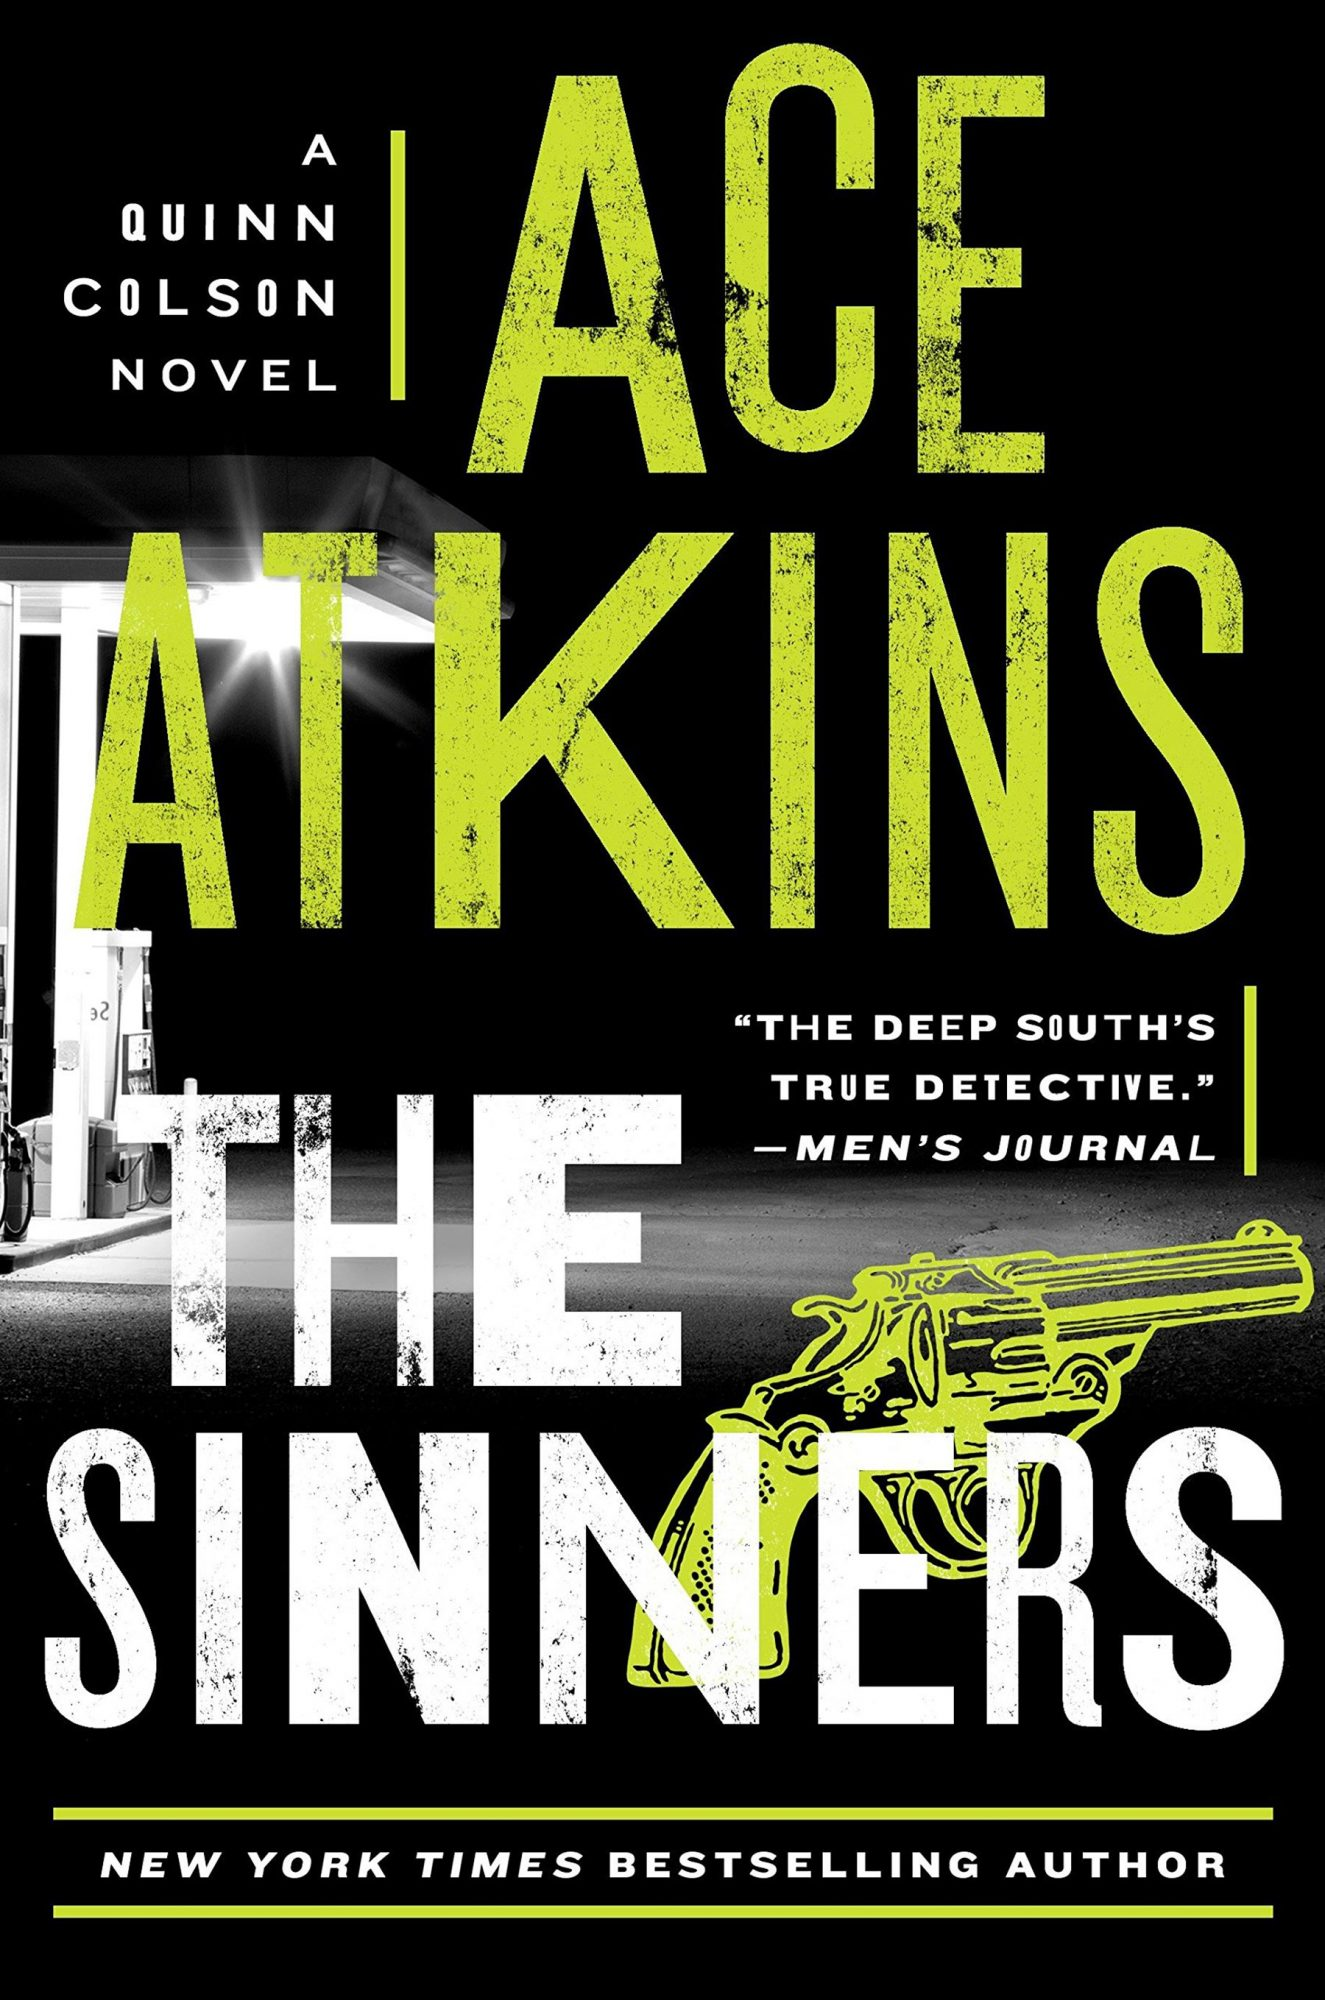 The Sinners (A Quinn Colson Novel)  by Ace Atkins G.P. Putnam's Sons